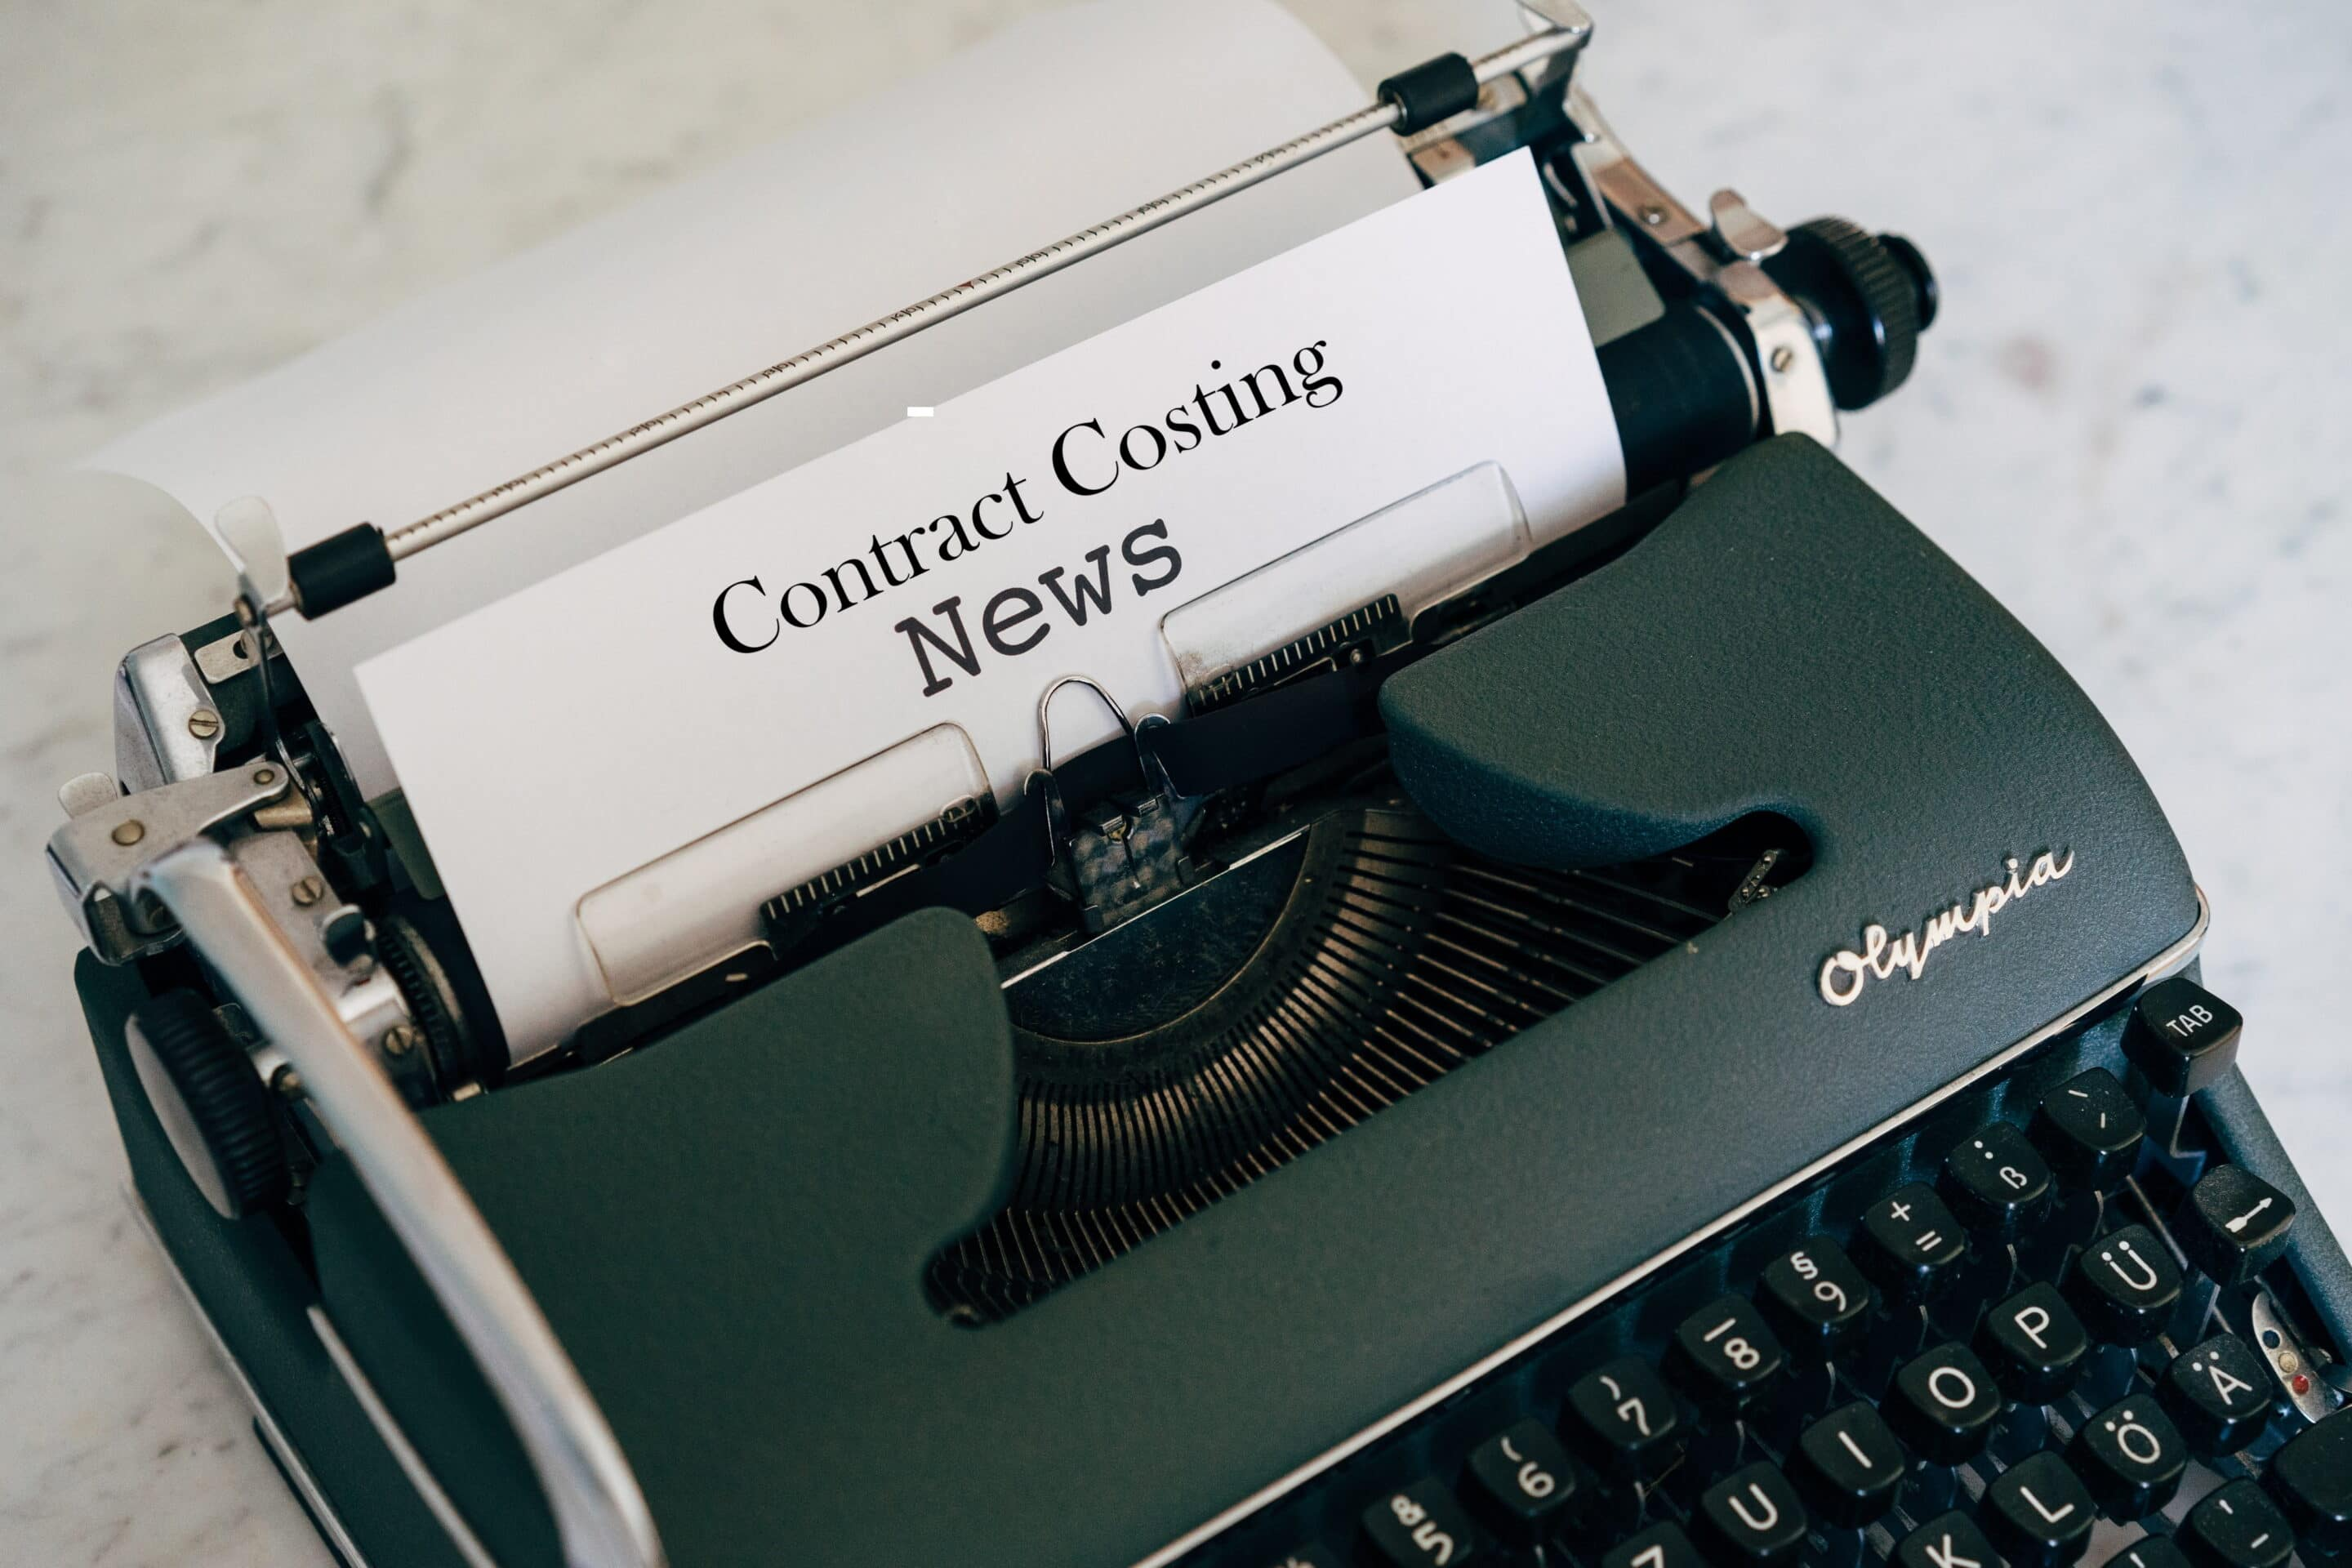 Contract Costing News